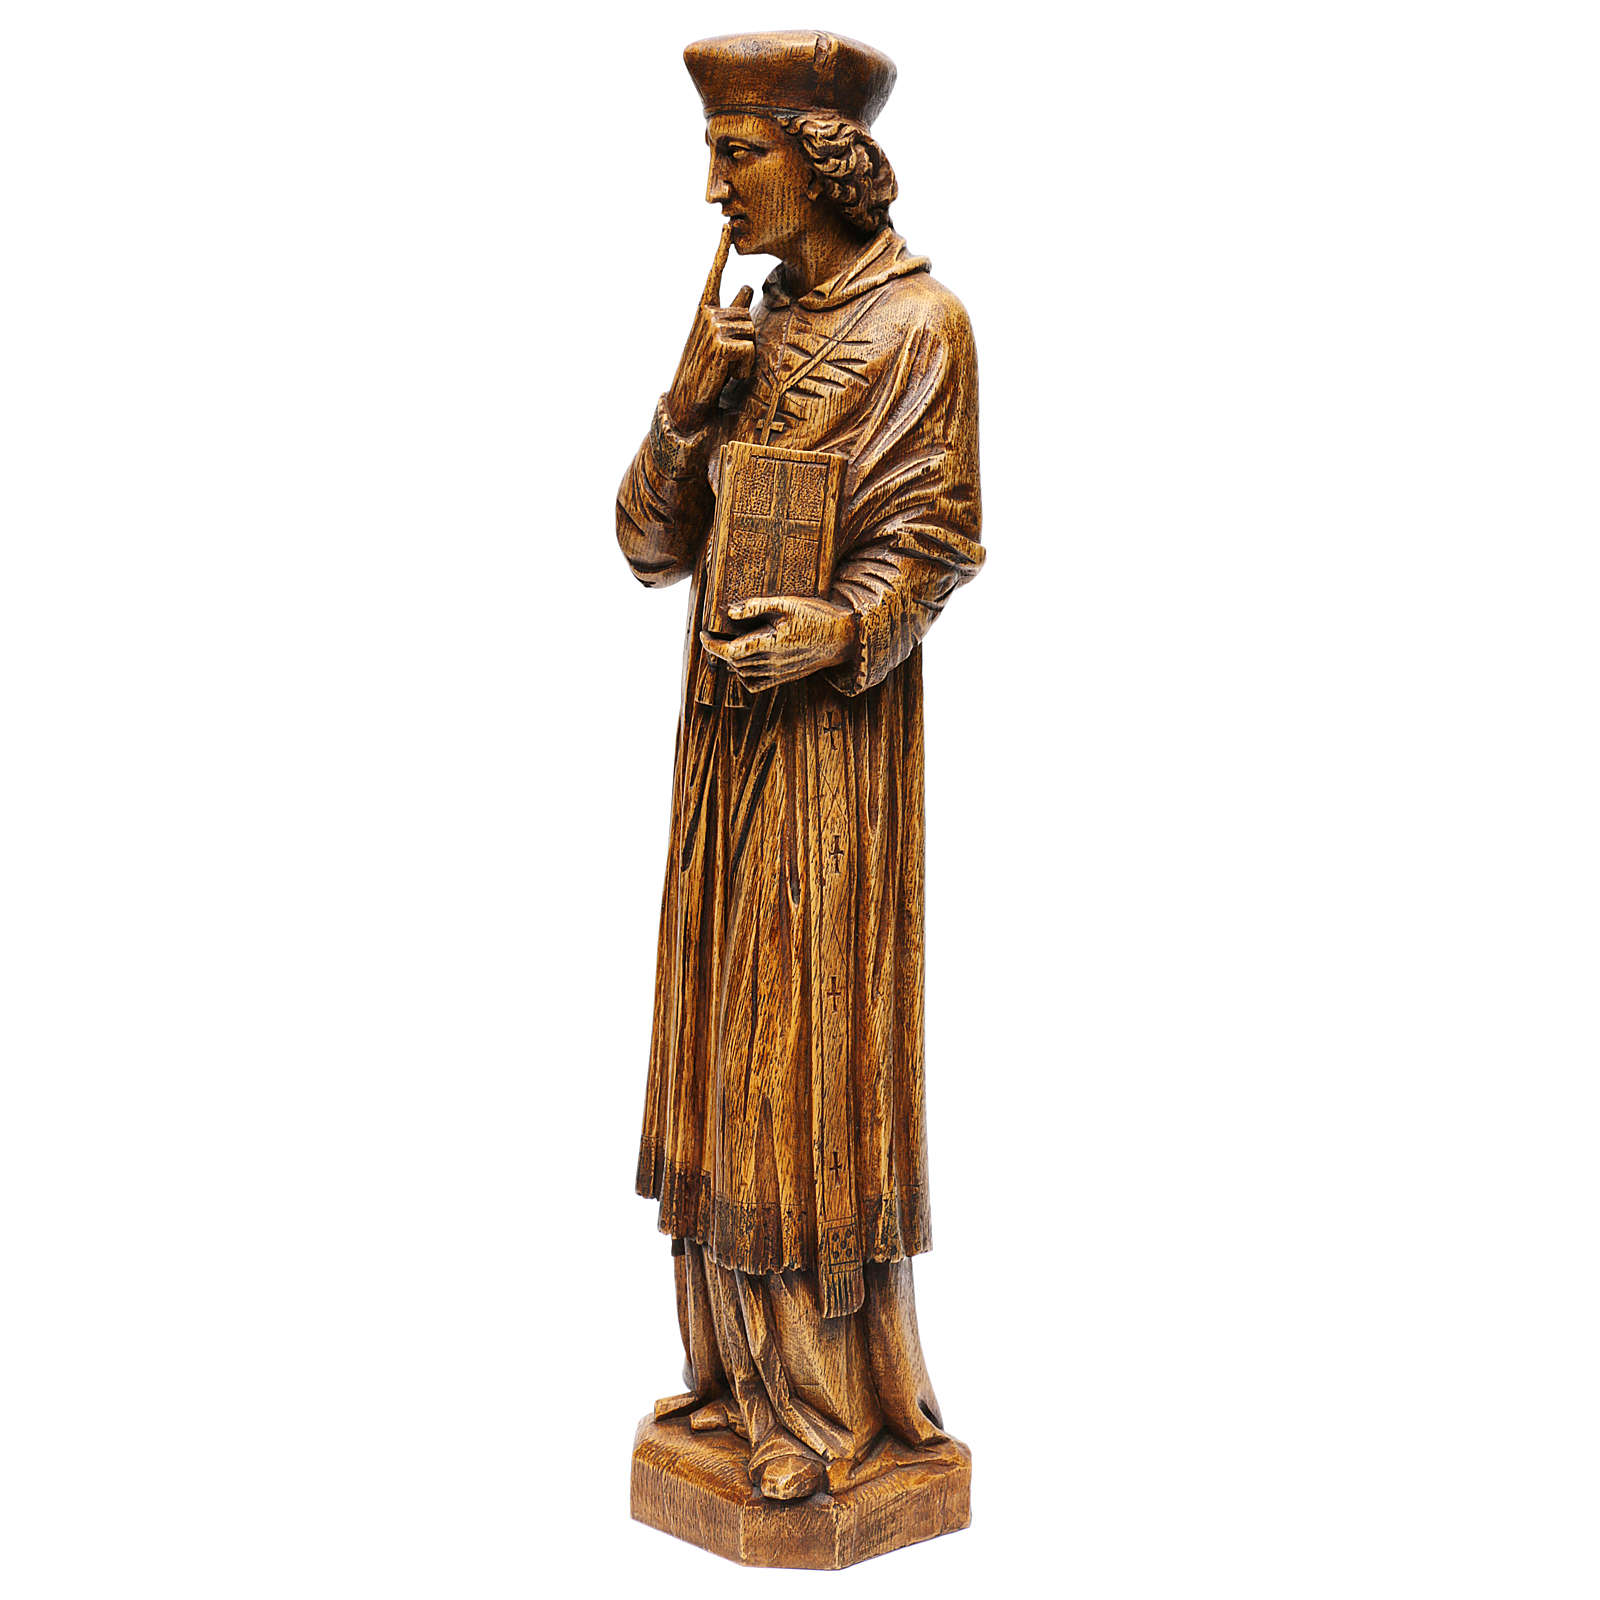 Saint Yves in stone, wood finish, Bethléem 63cm 4